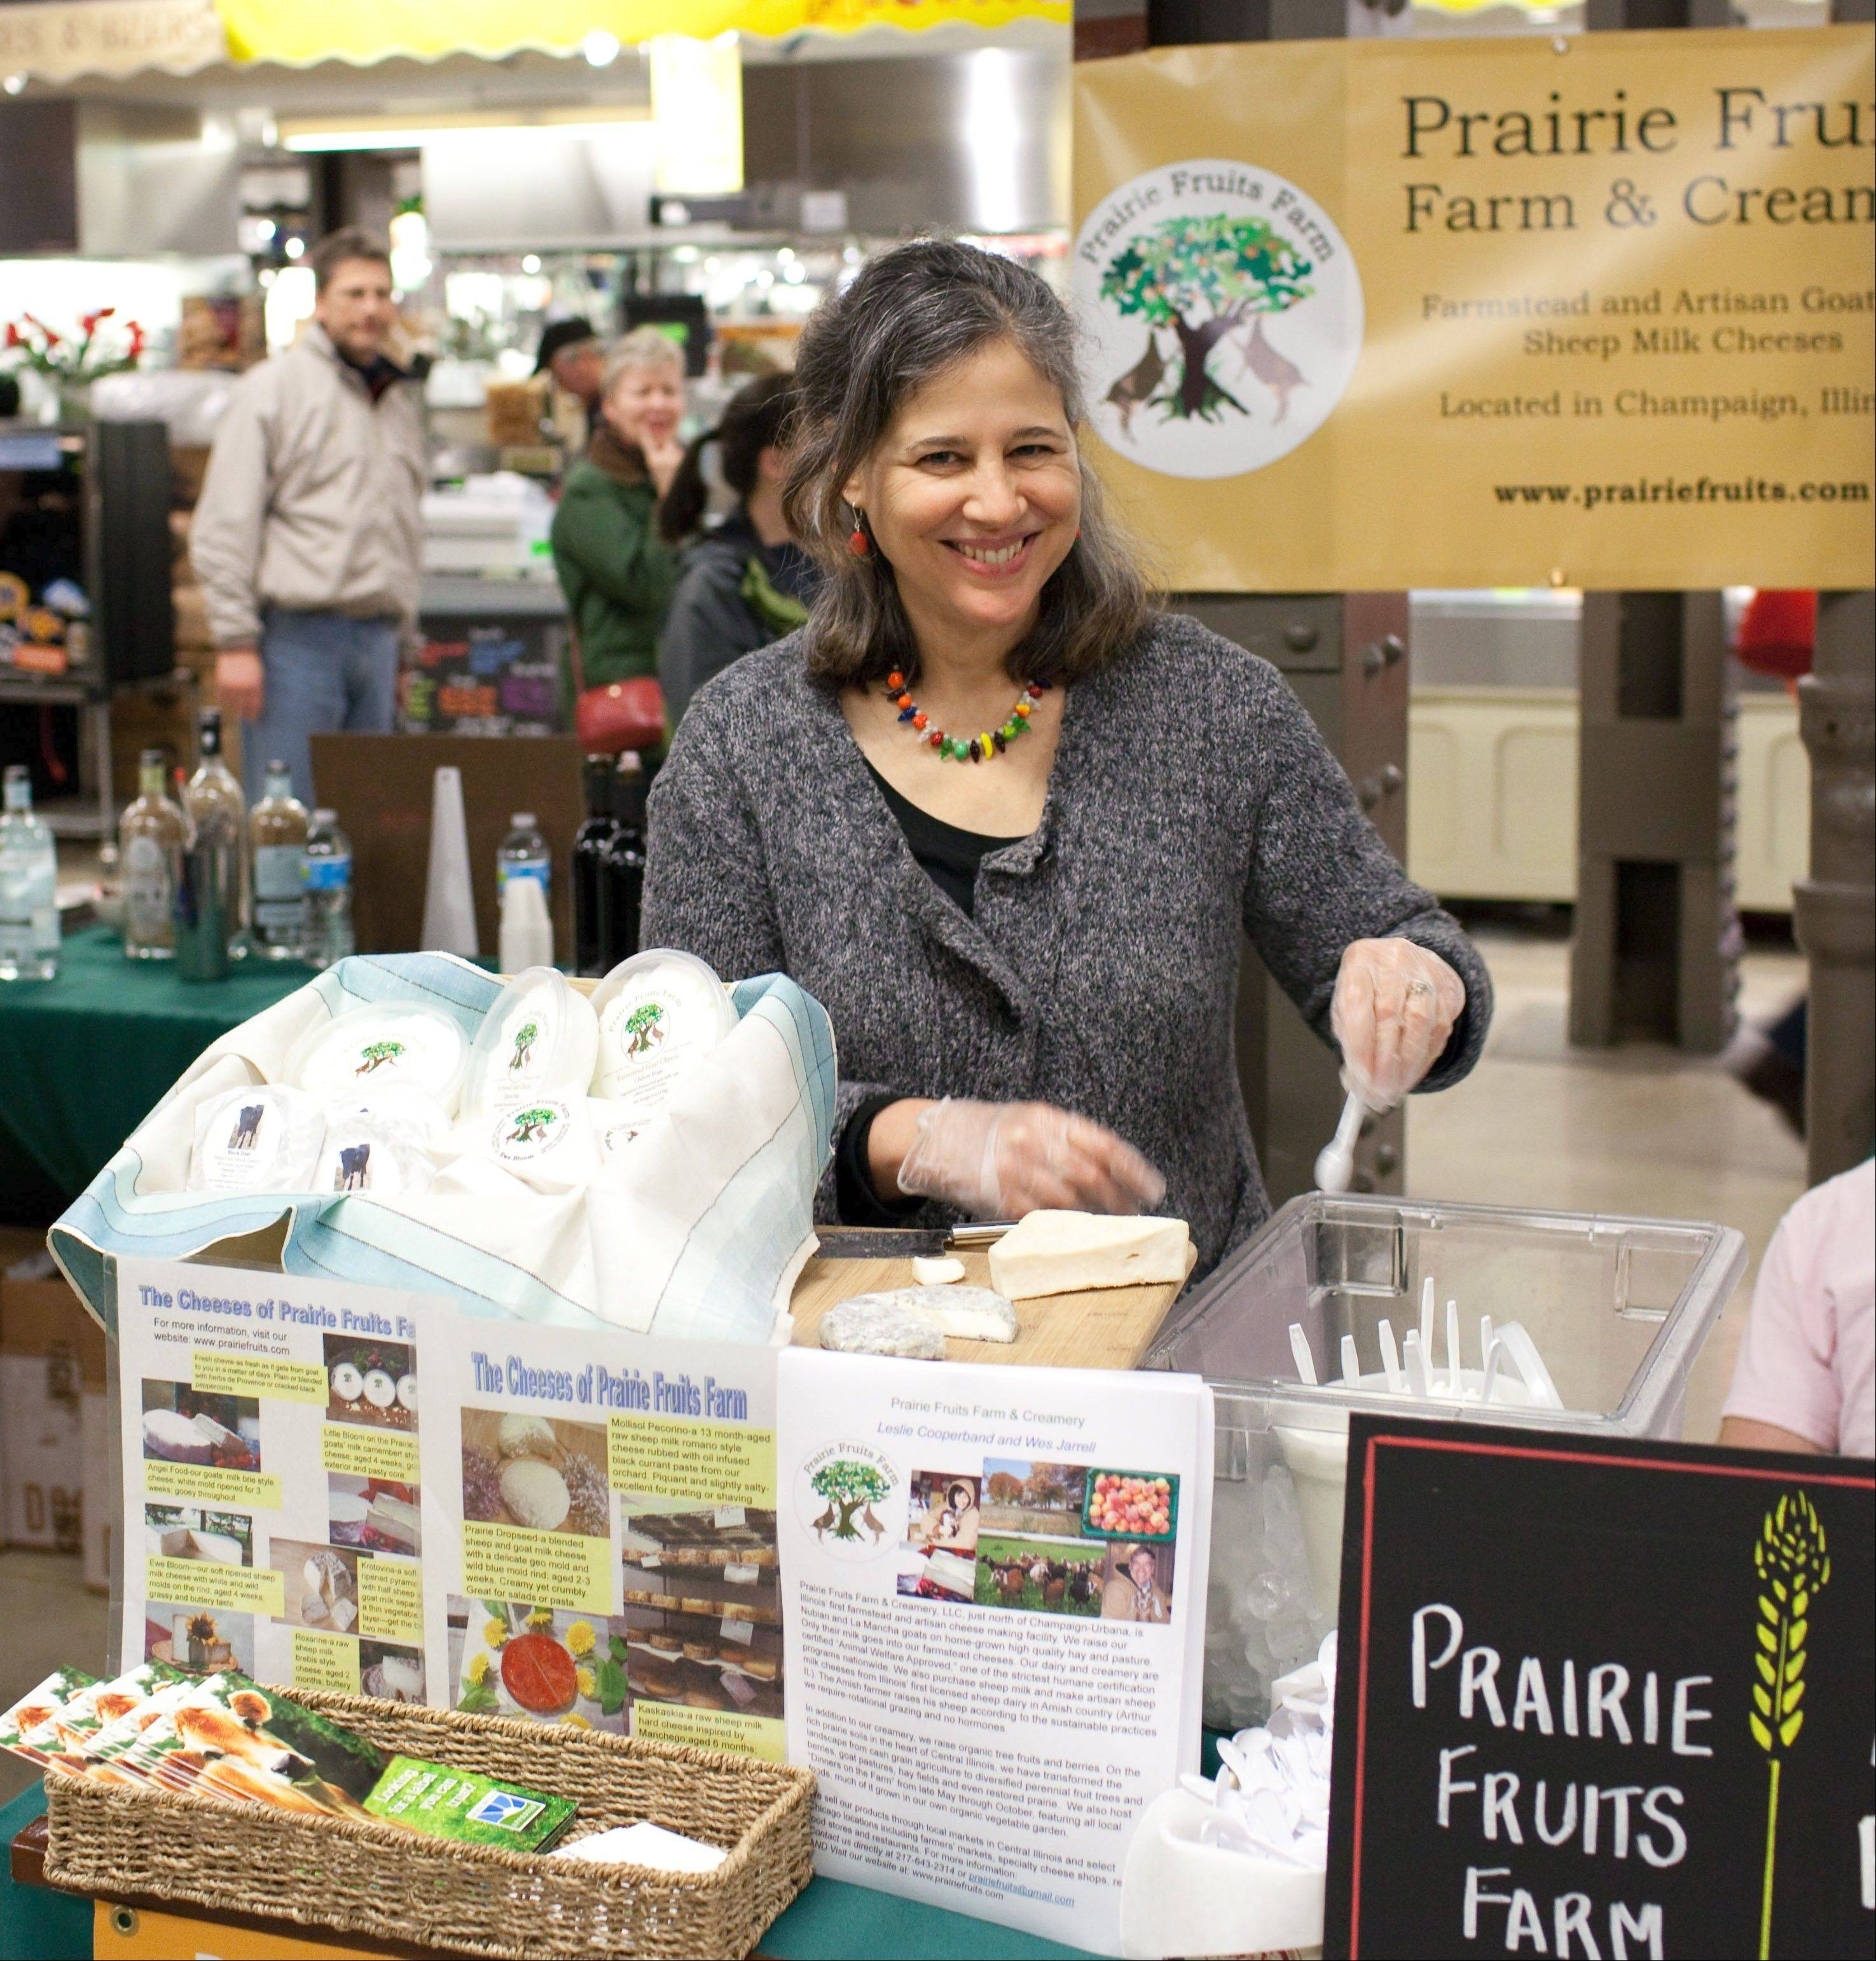 Cheesemaker Leslie Cooperband of Prairie Fruits Farm will be part of the Pastoral's Artisan Producer Festival in Chicago on Saturday, April 27.